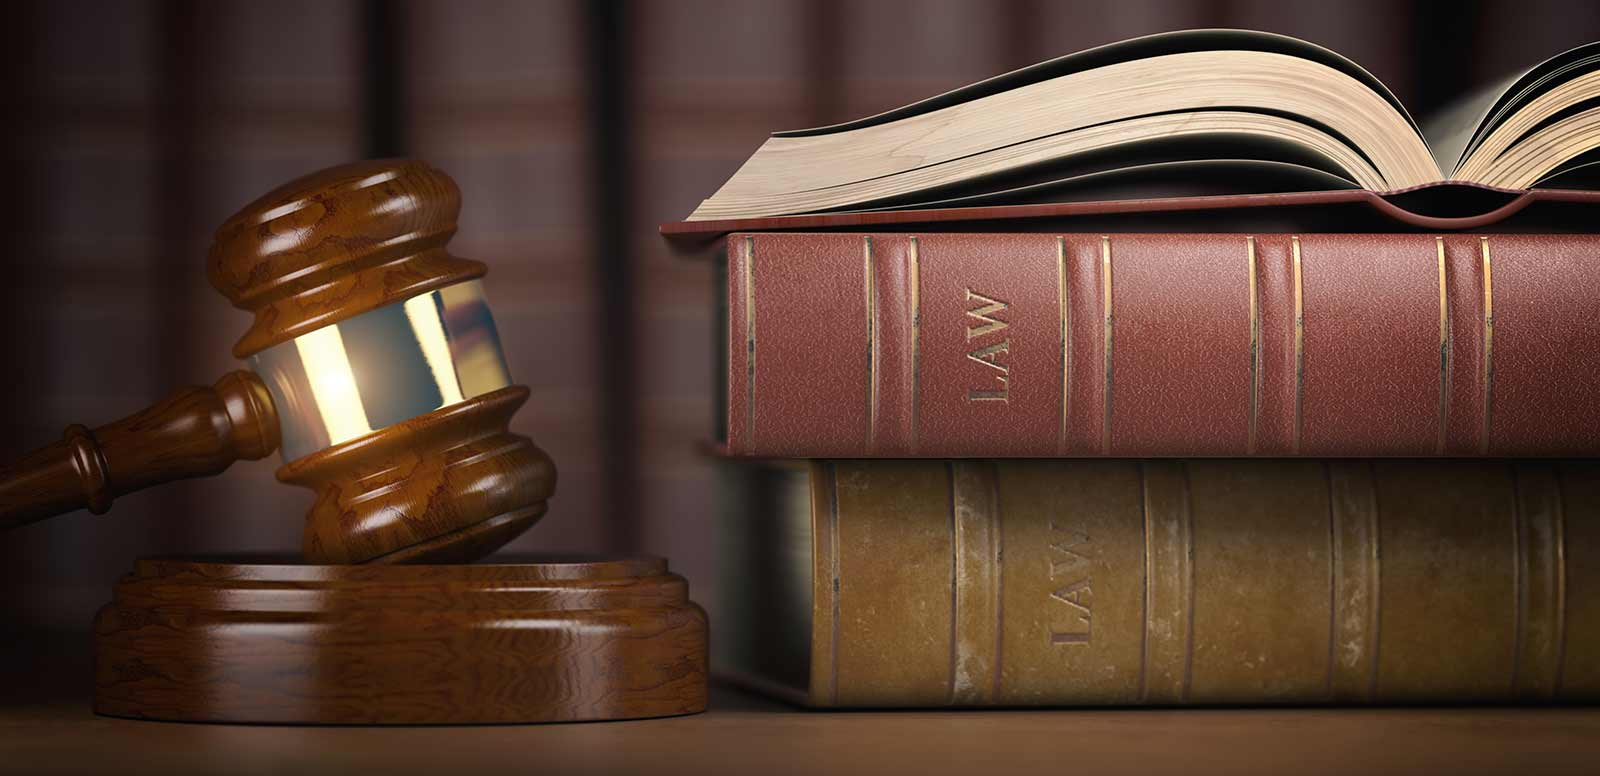 Common Acronyms In Criminal Cases